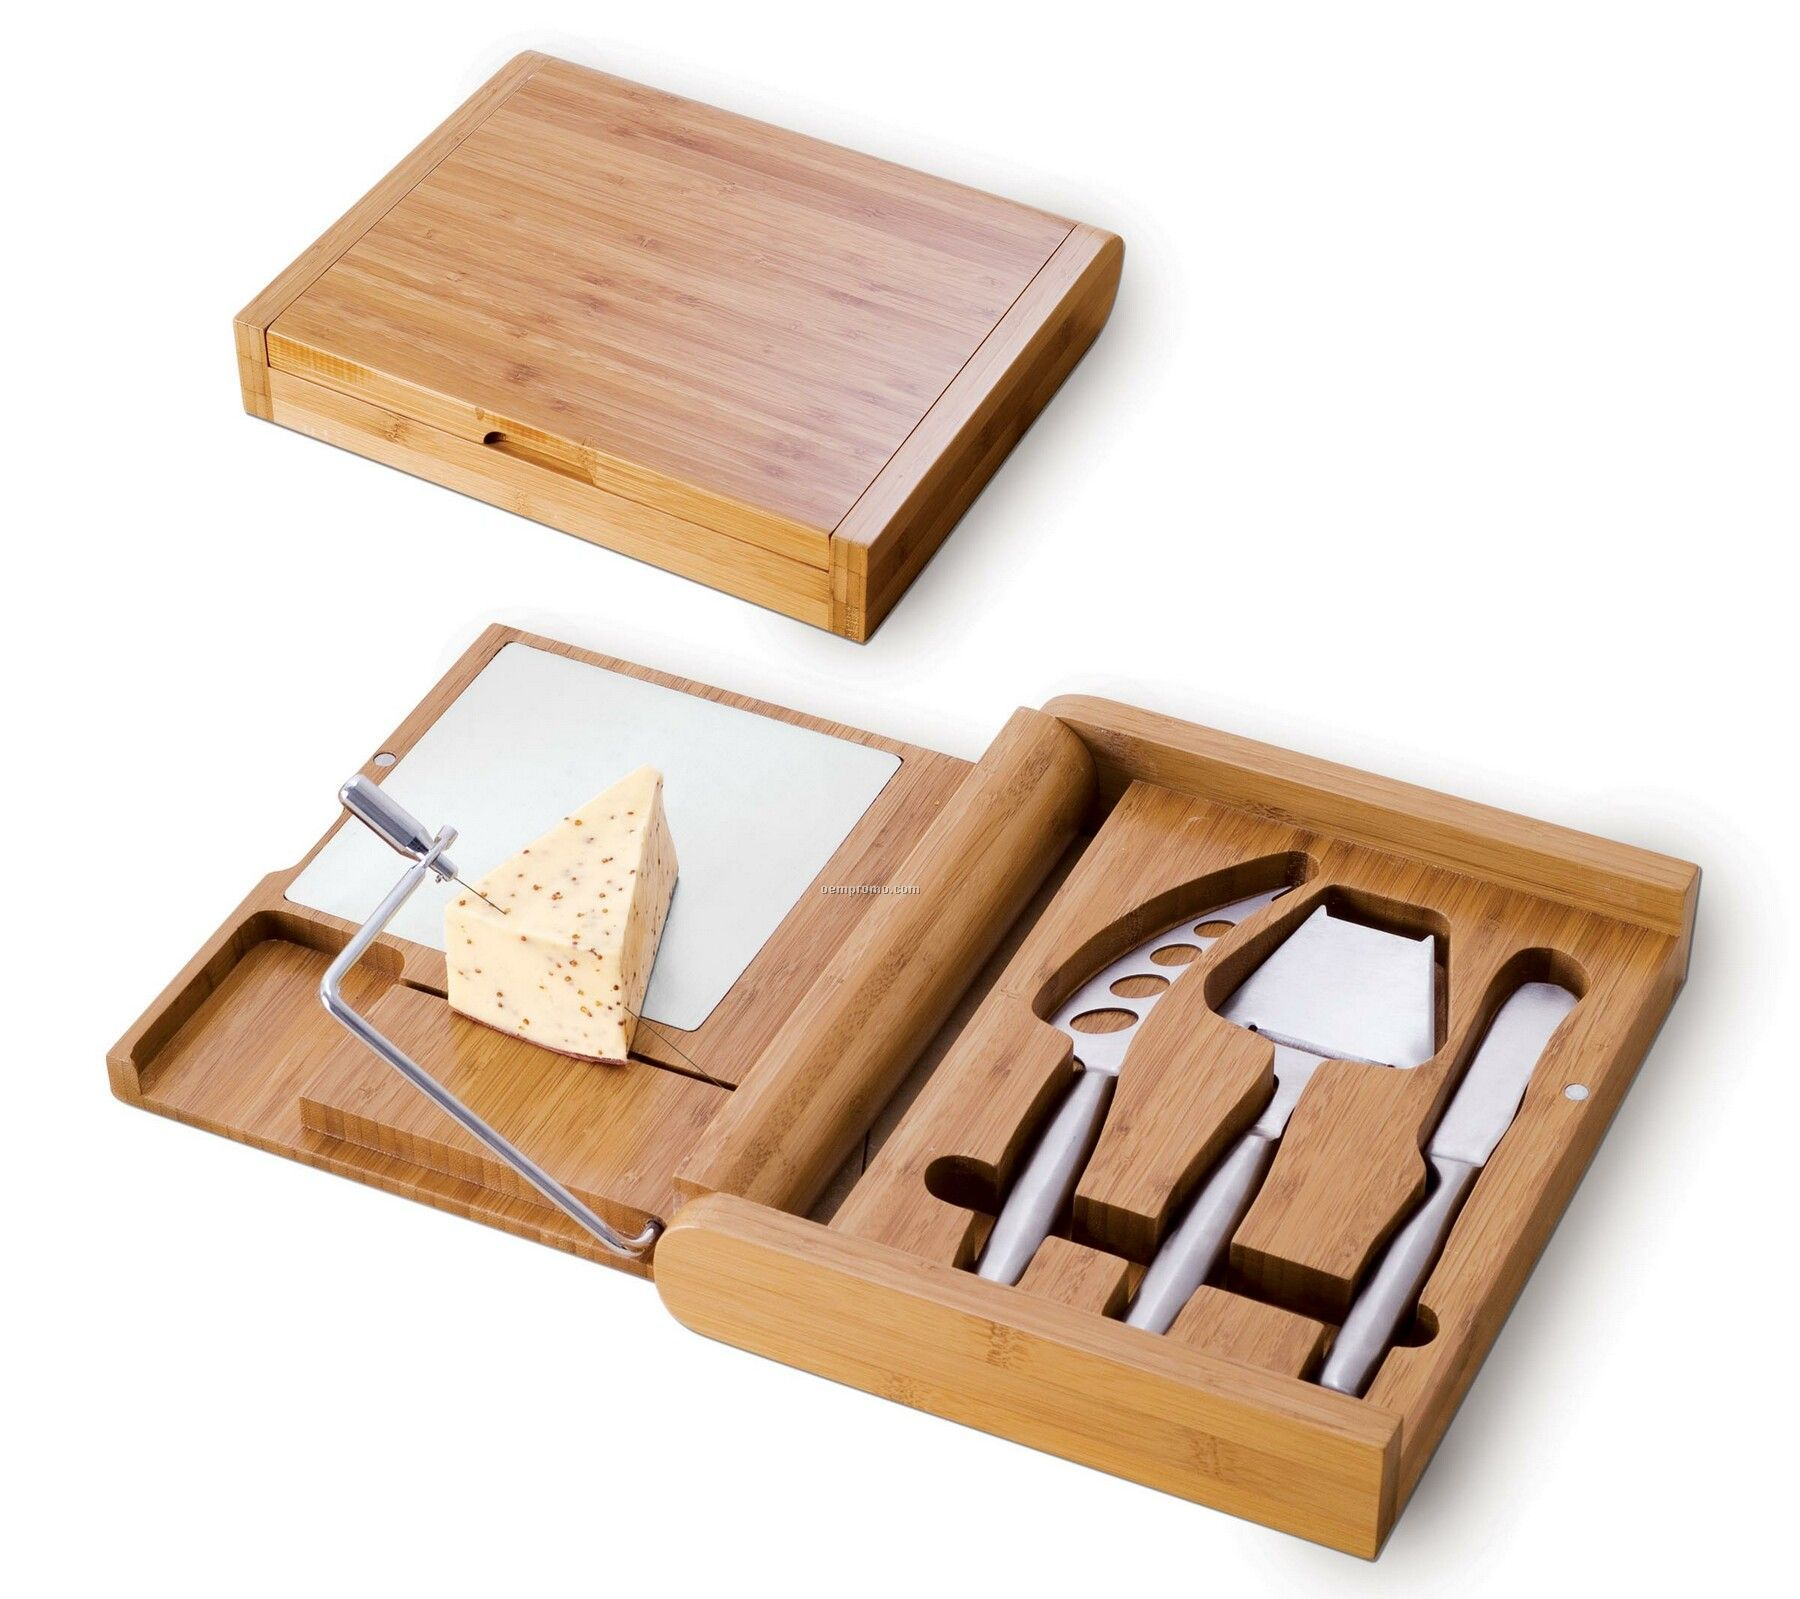 Soiree Bamboo Cutting Board W/ Cheese Wire & 3 Tools In Lidded Box